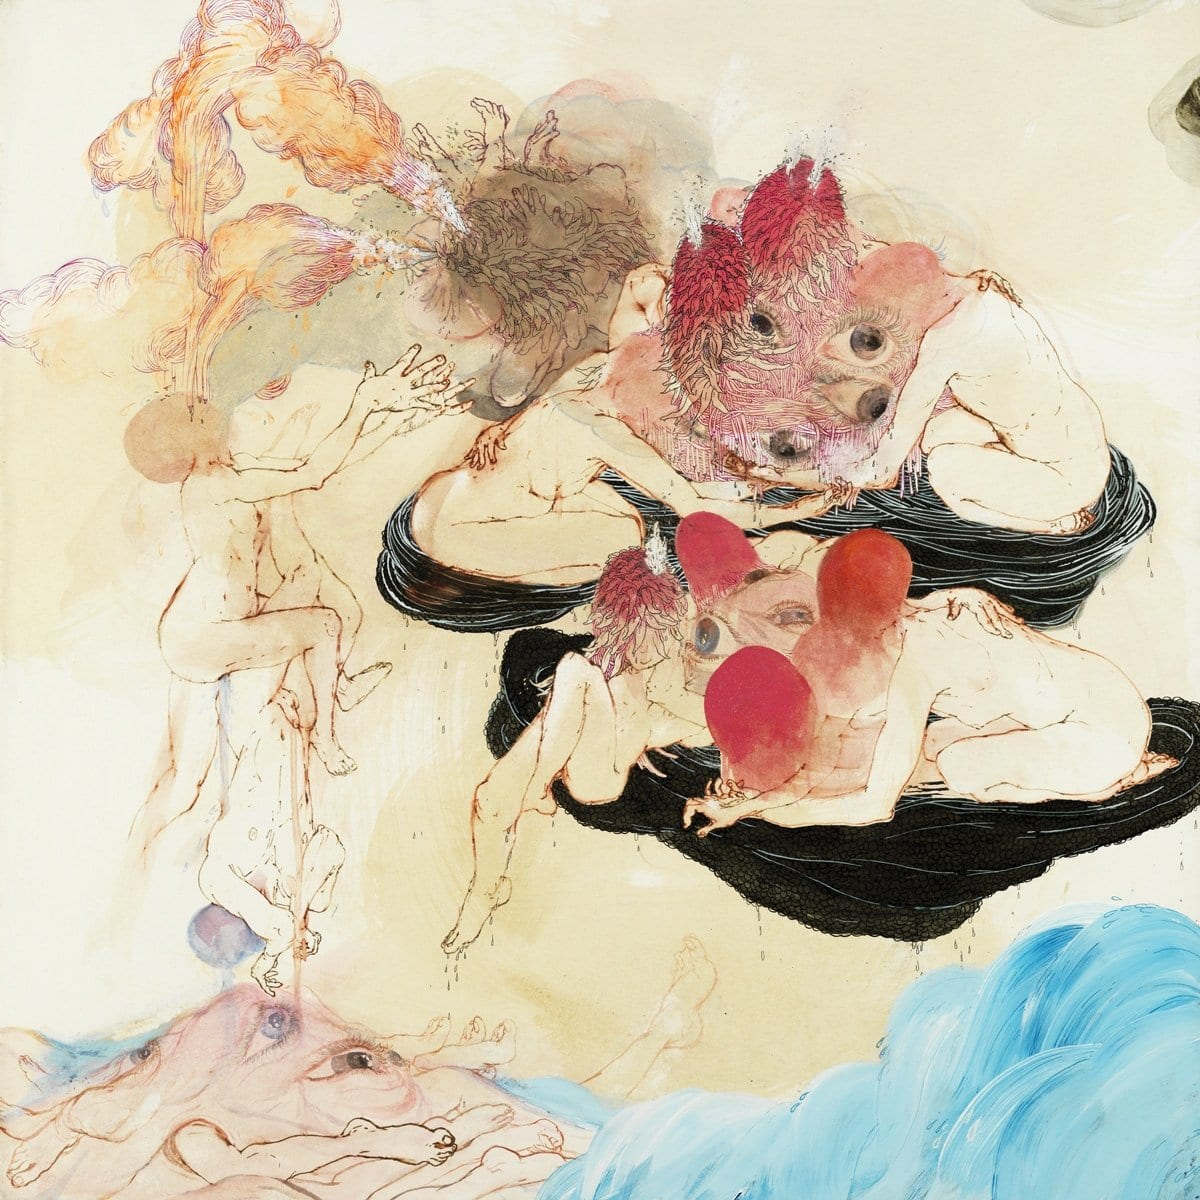 Future Islands - In Evening Air [LP] (black vinyl, ) - Urban Vinyl | Records, Headphones, and more.